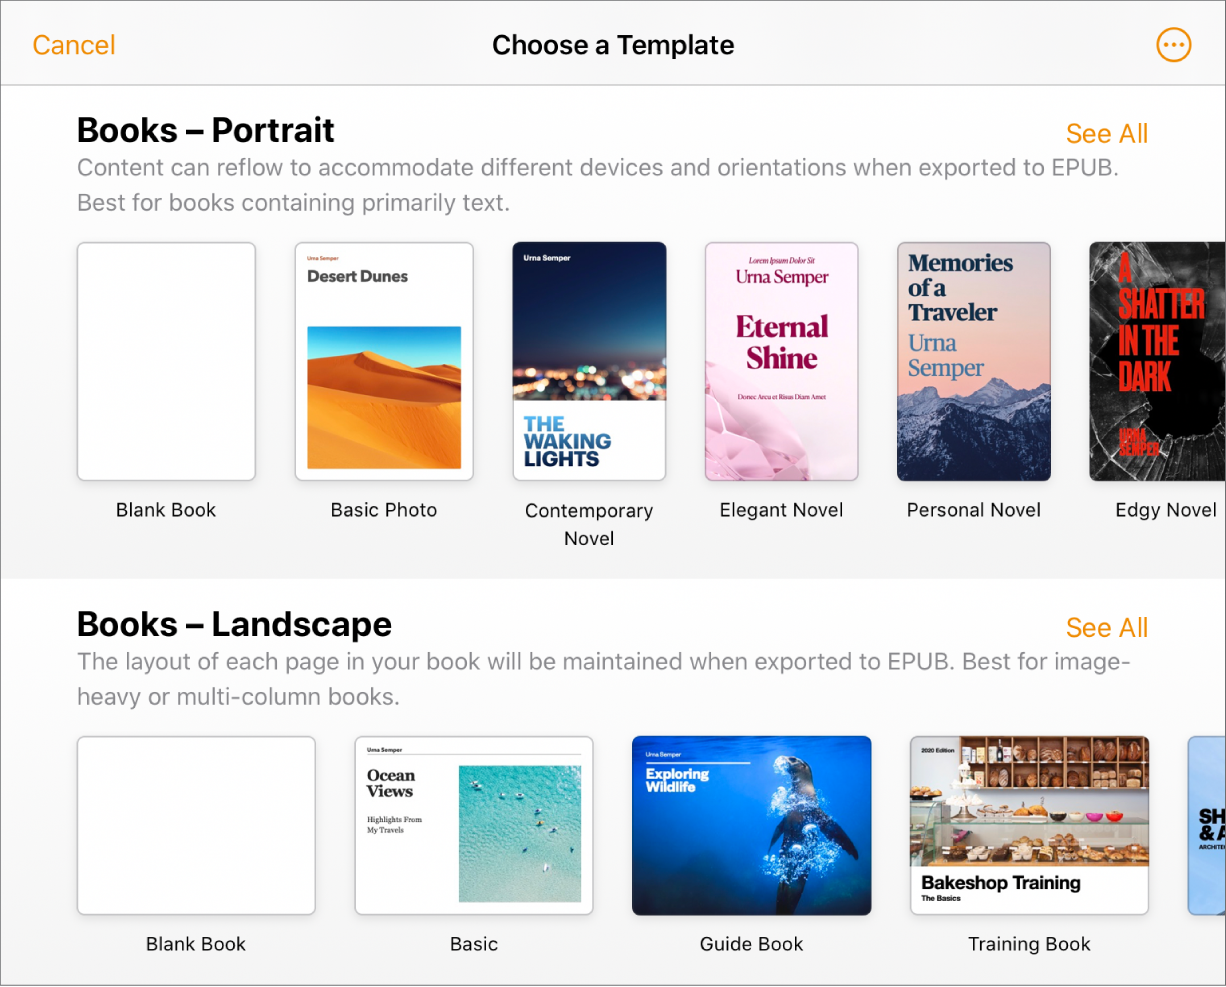 The template chooser with book templates in portrait orientation at the top and landscape orientation below.